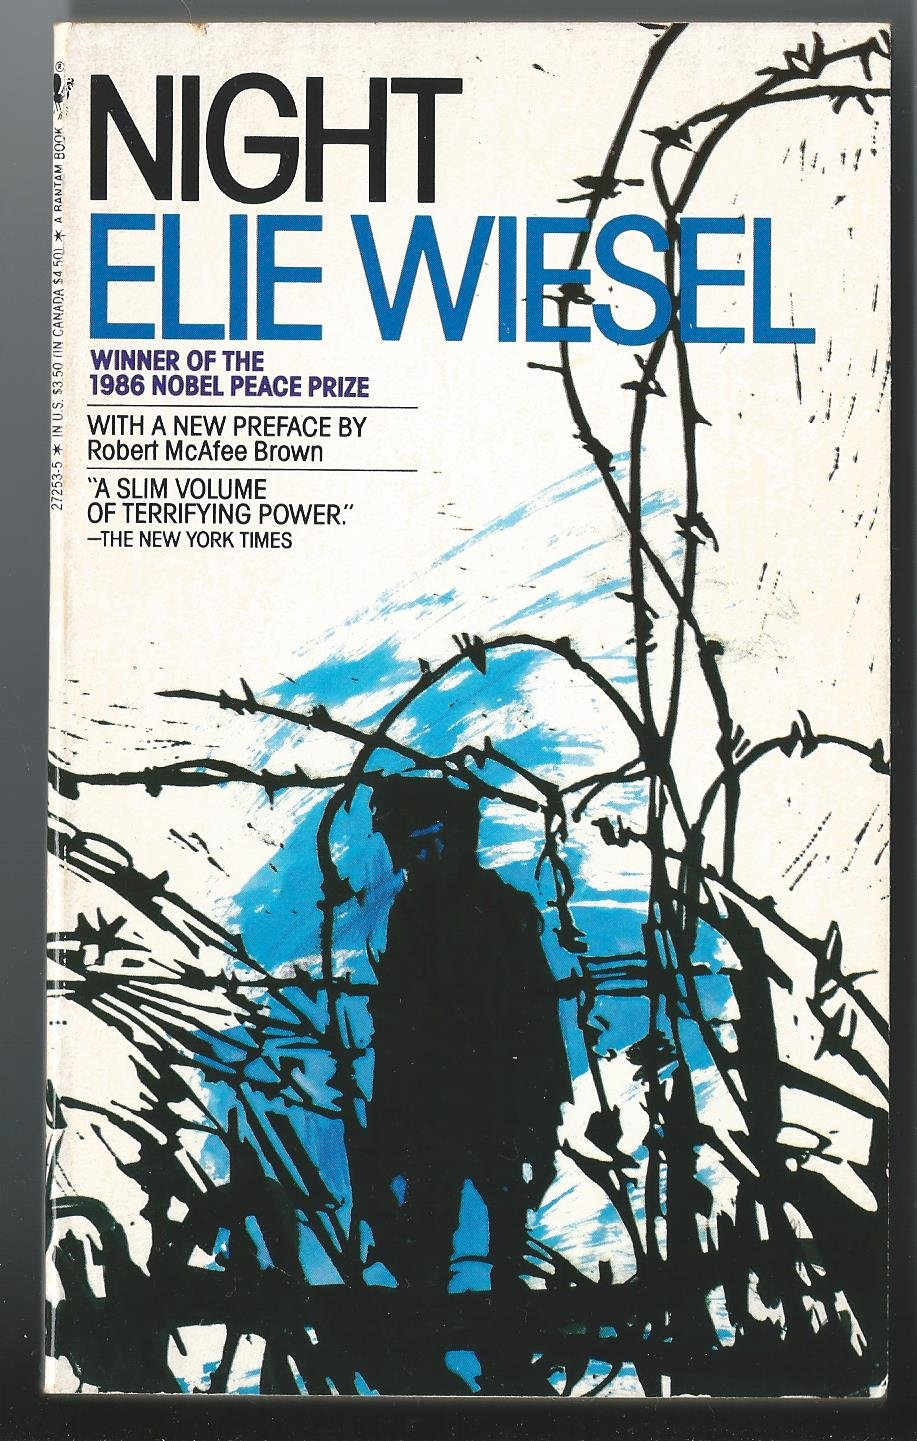 night elie wiesel loss of faith Night by elie wiesel is a survivor's account of the holocaust the flames are from an event that led to wiesel losing his faith, though whether it is in himself or in humanity is not clear from this quote.